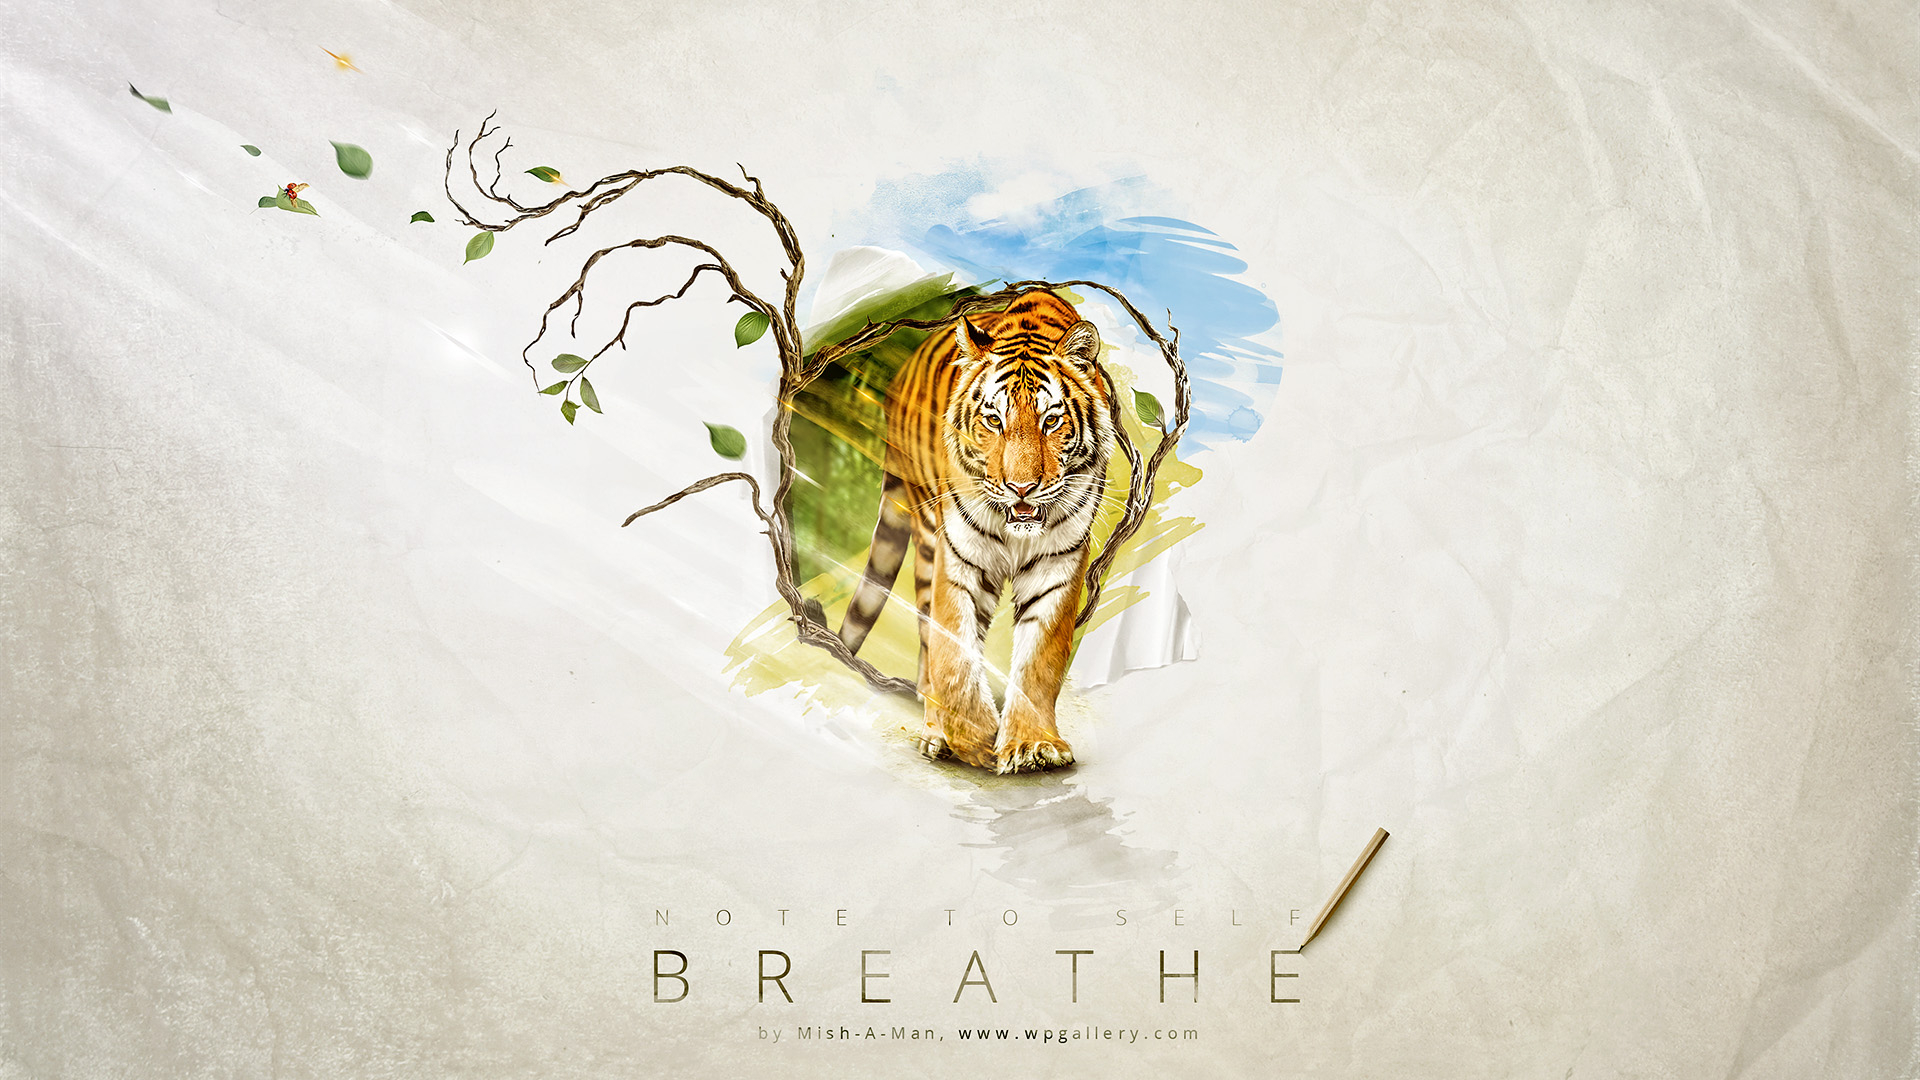 Breathe for 1920 x 1080 HDTV 1080p resolution